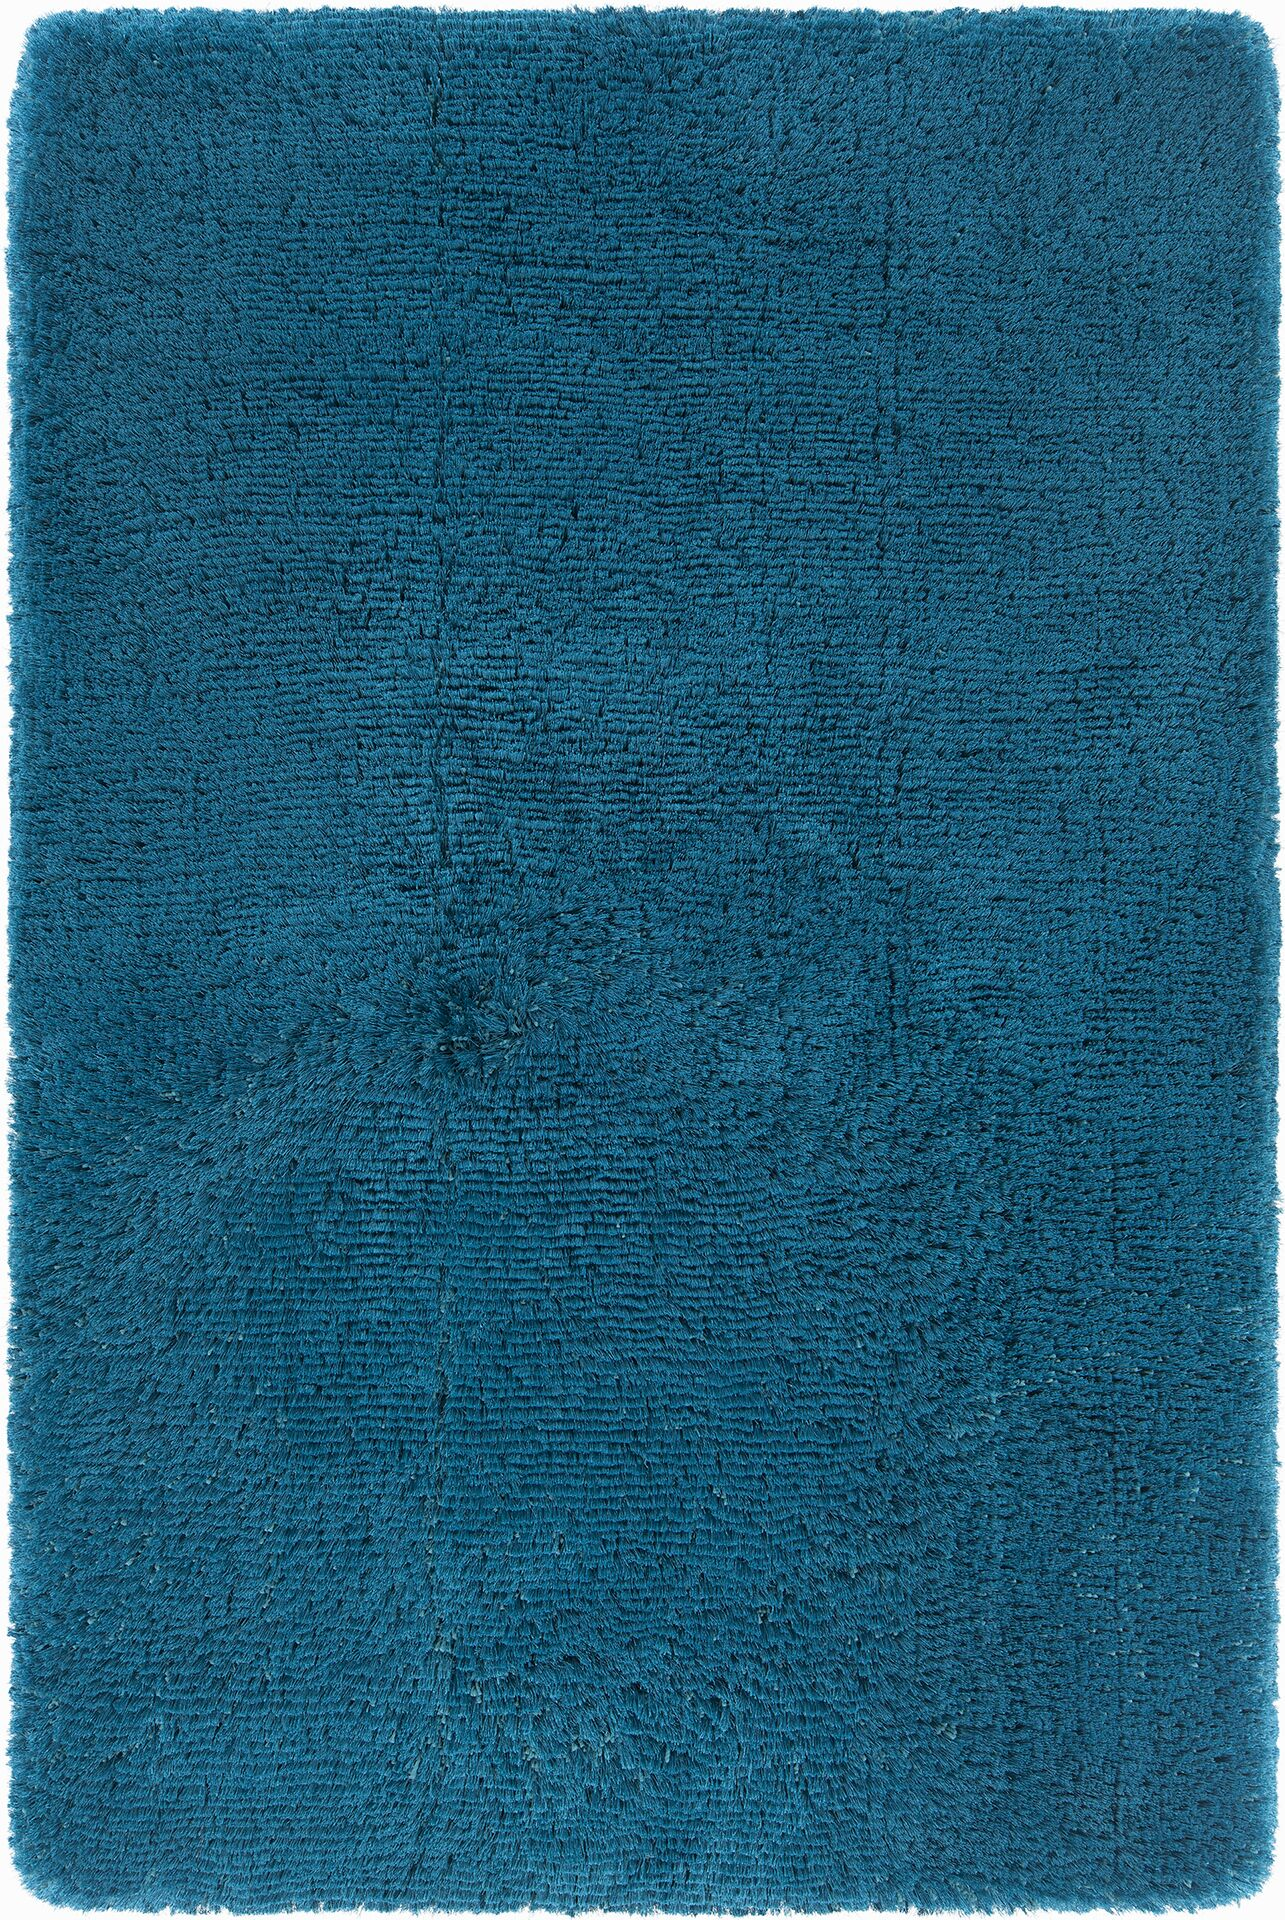 Joellen Textured Contemporary Shag Blue Area Rug Rug Size: Rectangle 9' x 13'